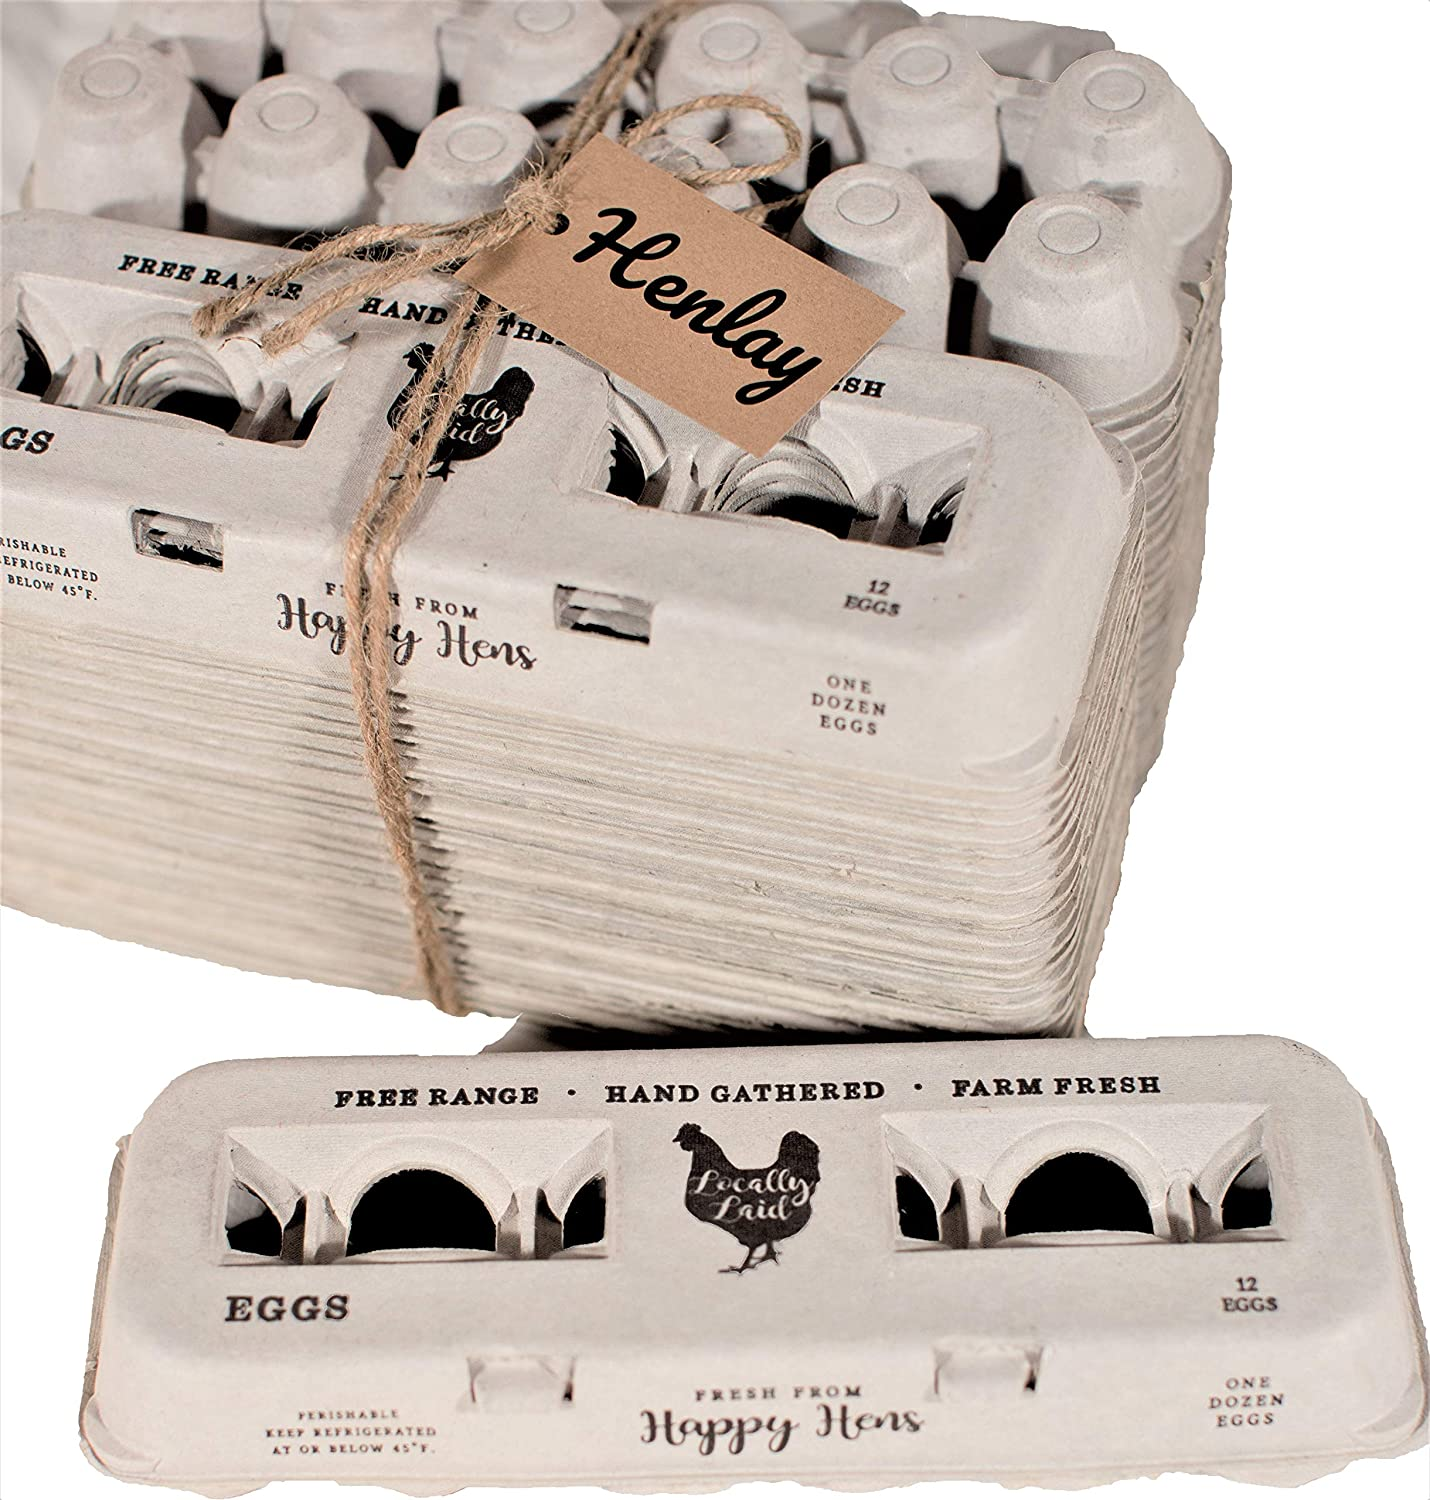 gifts-for-farmers-carton